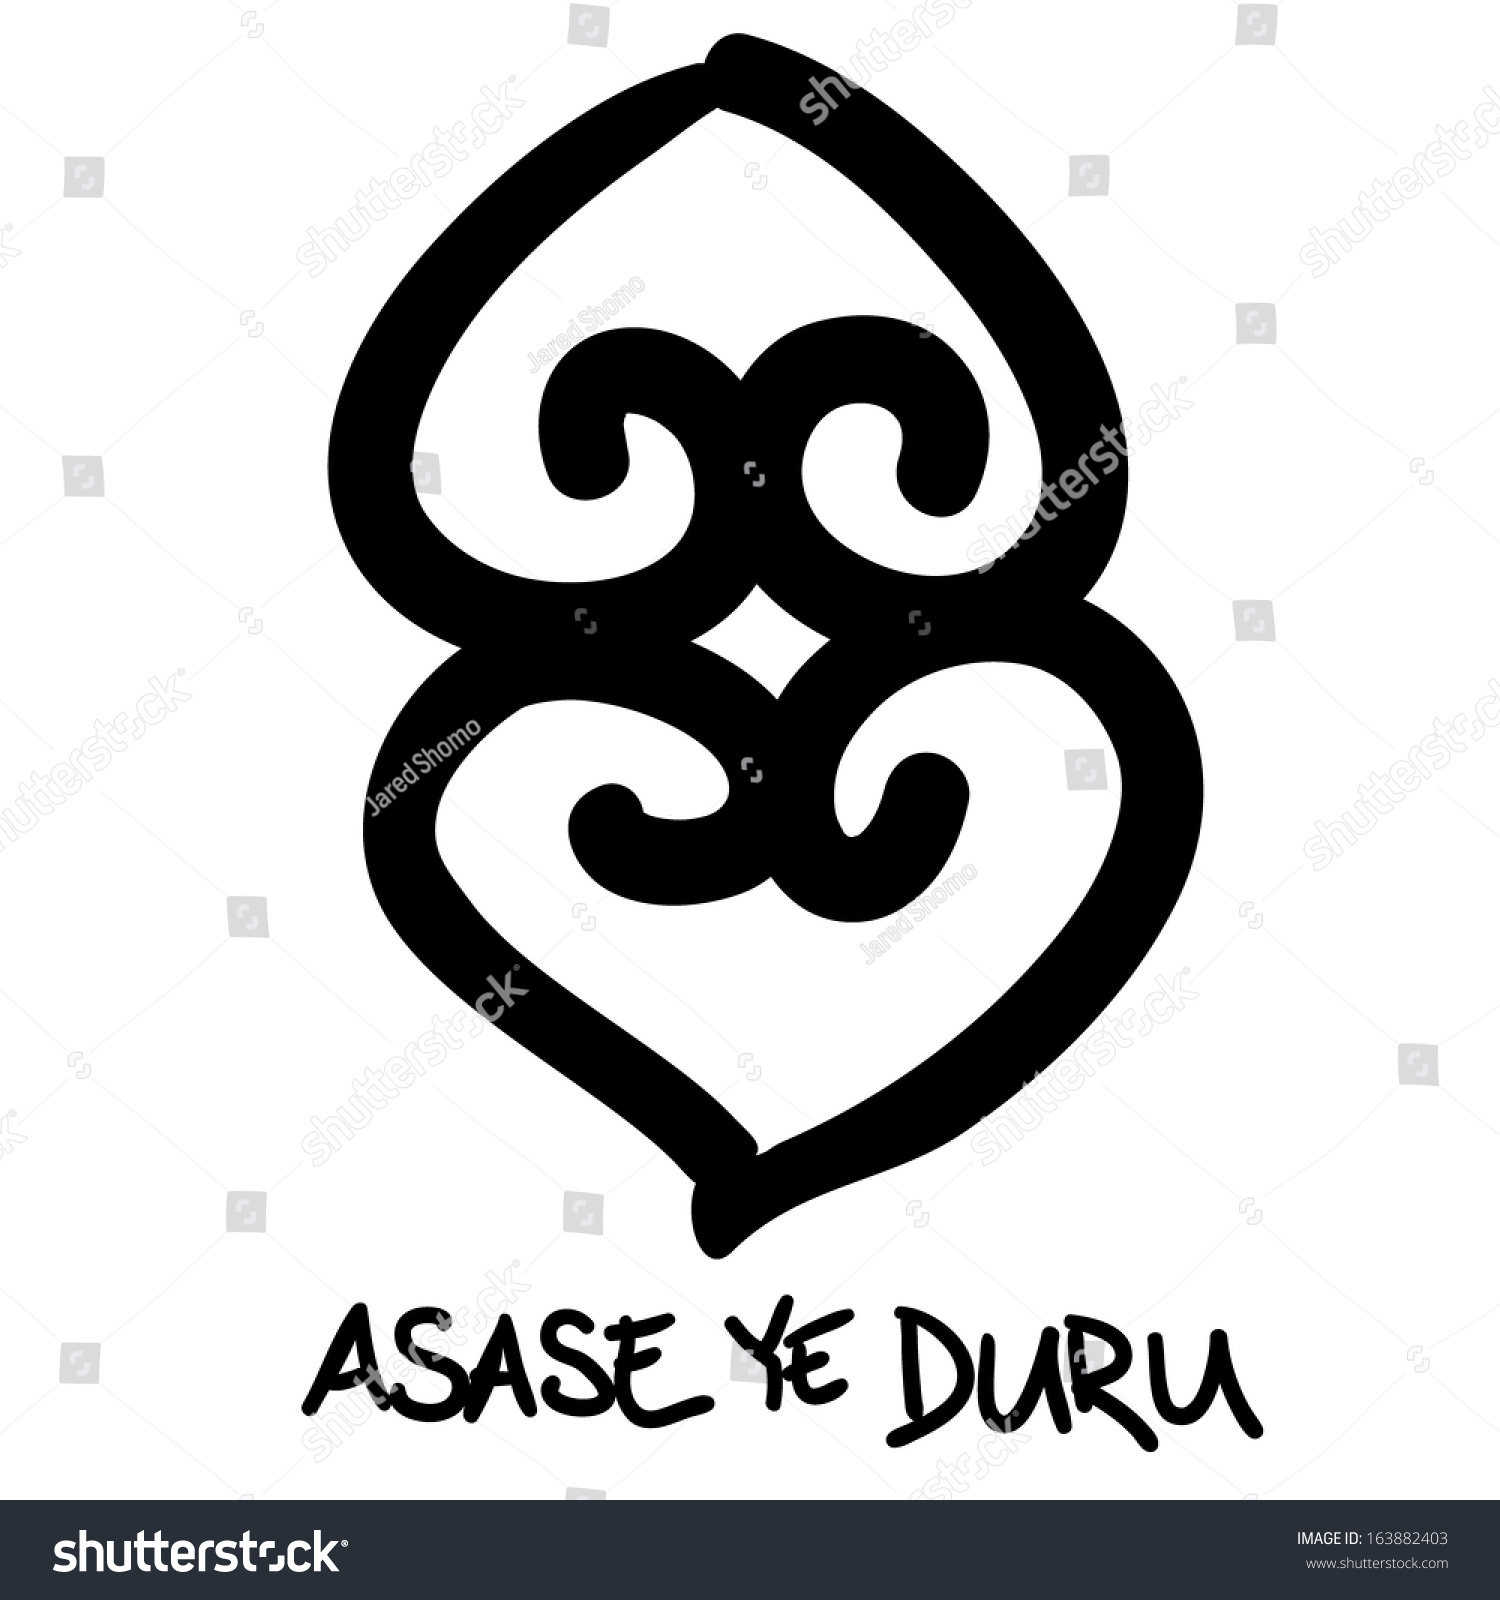 Asase ye duru adinkra symbol earth stock vector 163882403 asase ye duru adinkra symbol the earth has weight buycottarizona